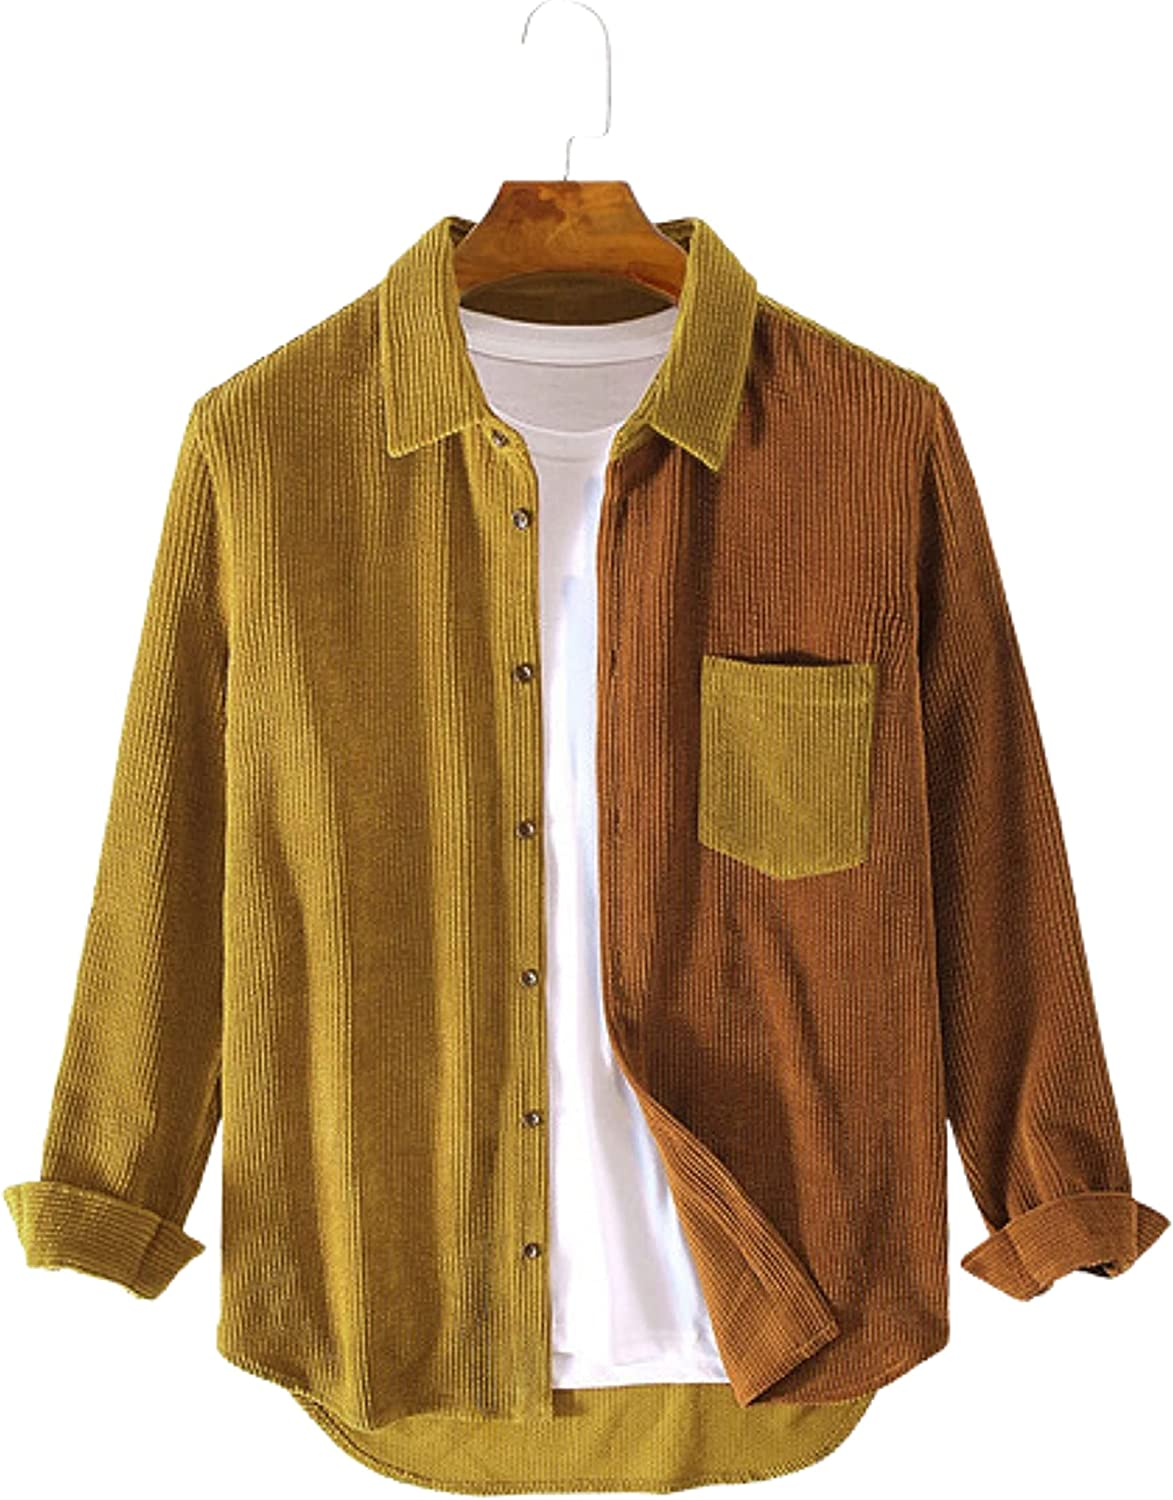 Gihuo Men's Corduroy Shirts Patchwork Contrast Color Button Down Shirts Tops